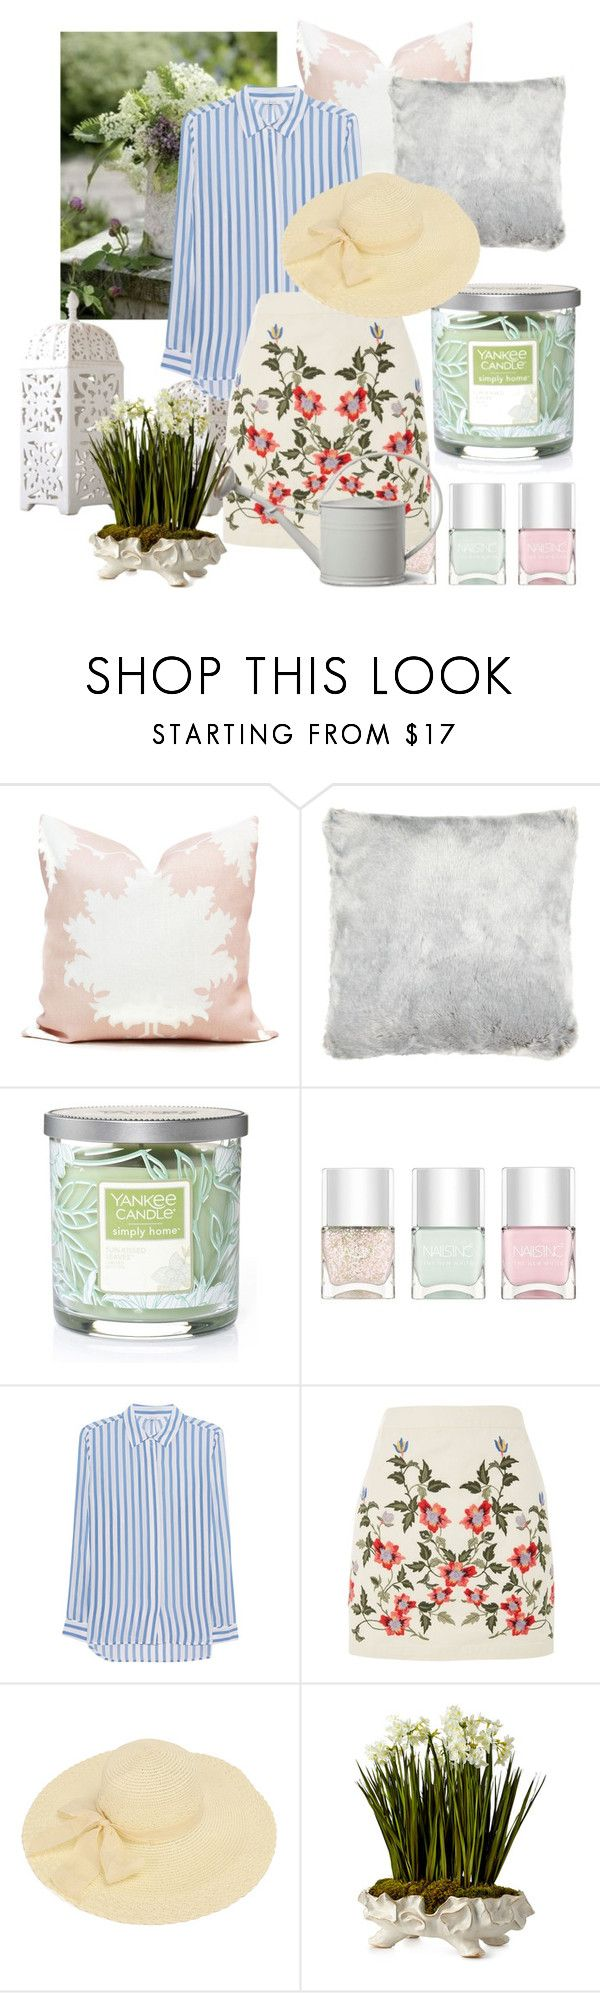 """Untitled #6"" by sziszisch ❤ liked on Polyvore featuring John Lewis, Yankee Candle, Nails Inc., iHeart, Topshop and John-Richard"